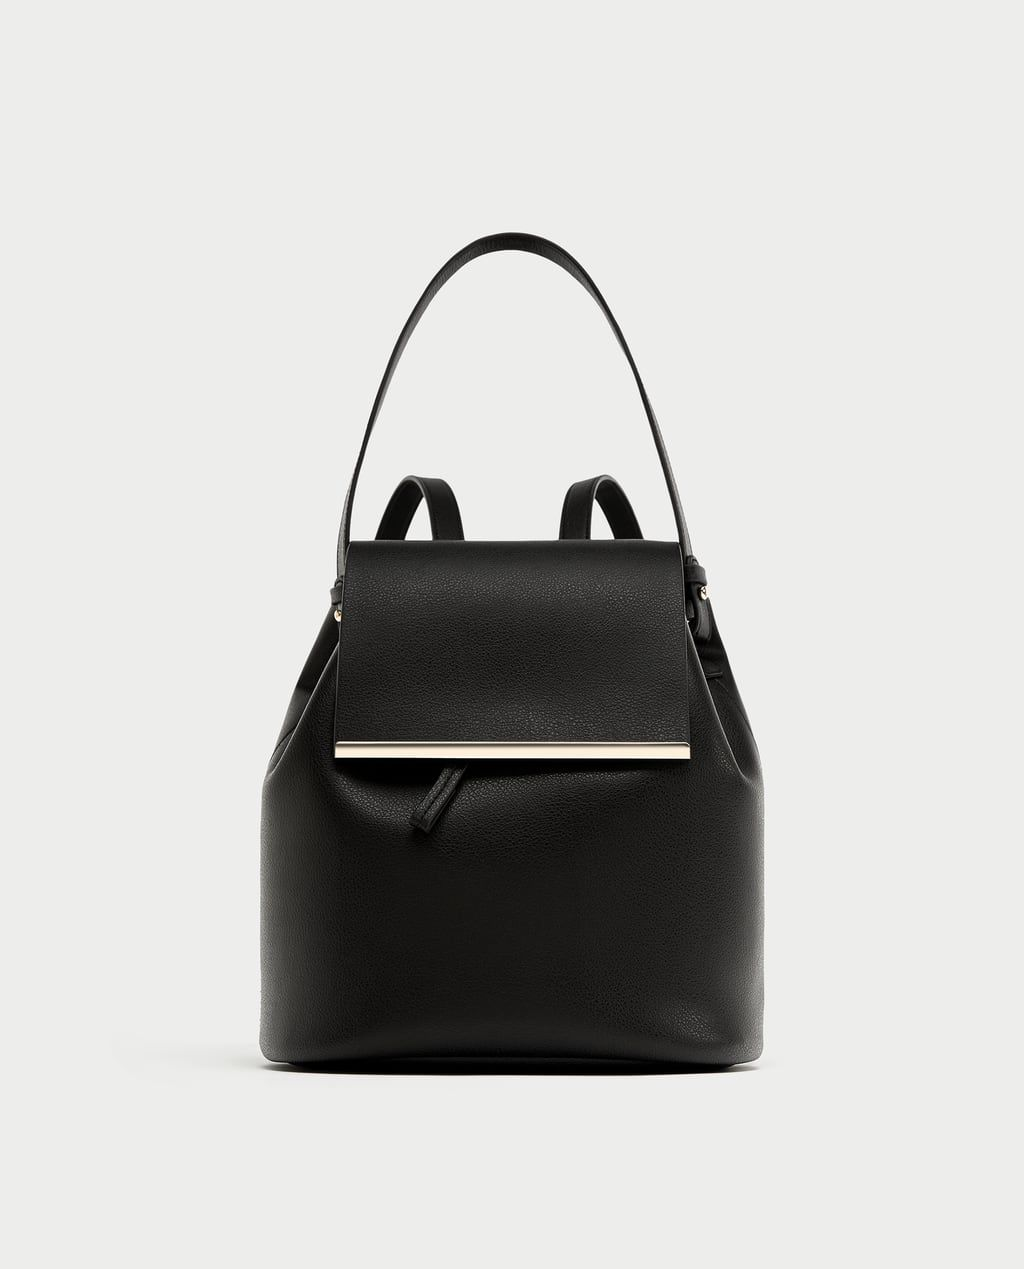 A black faux leather backpack